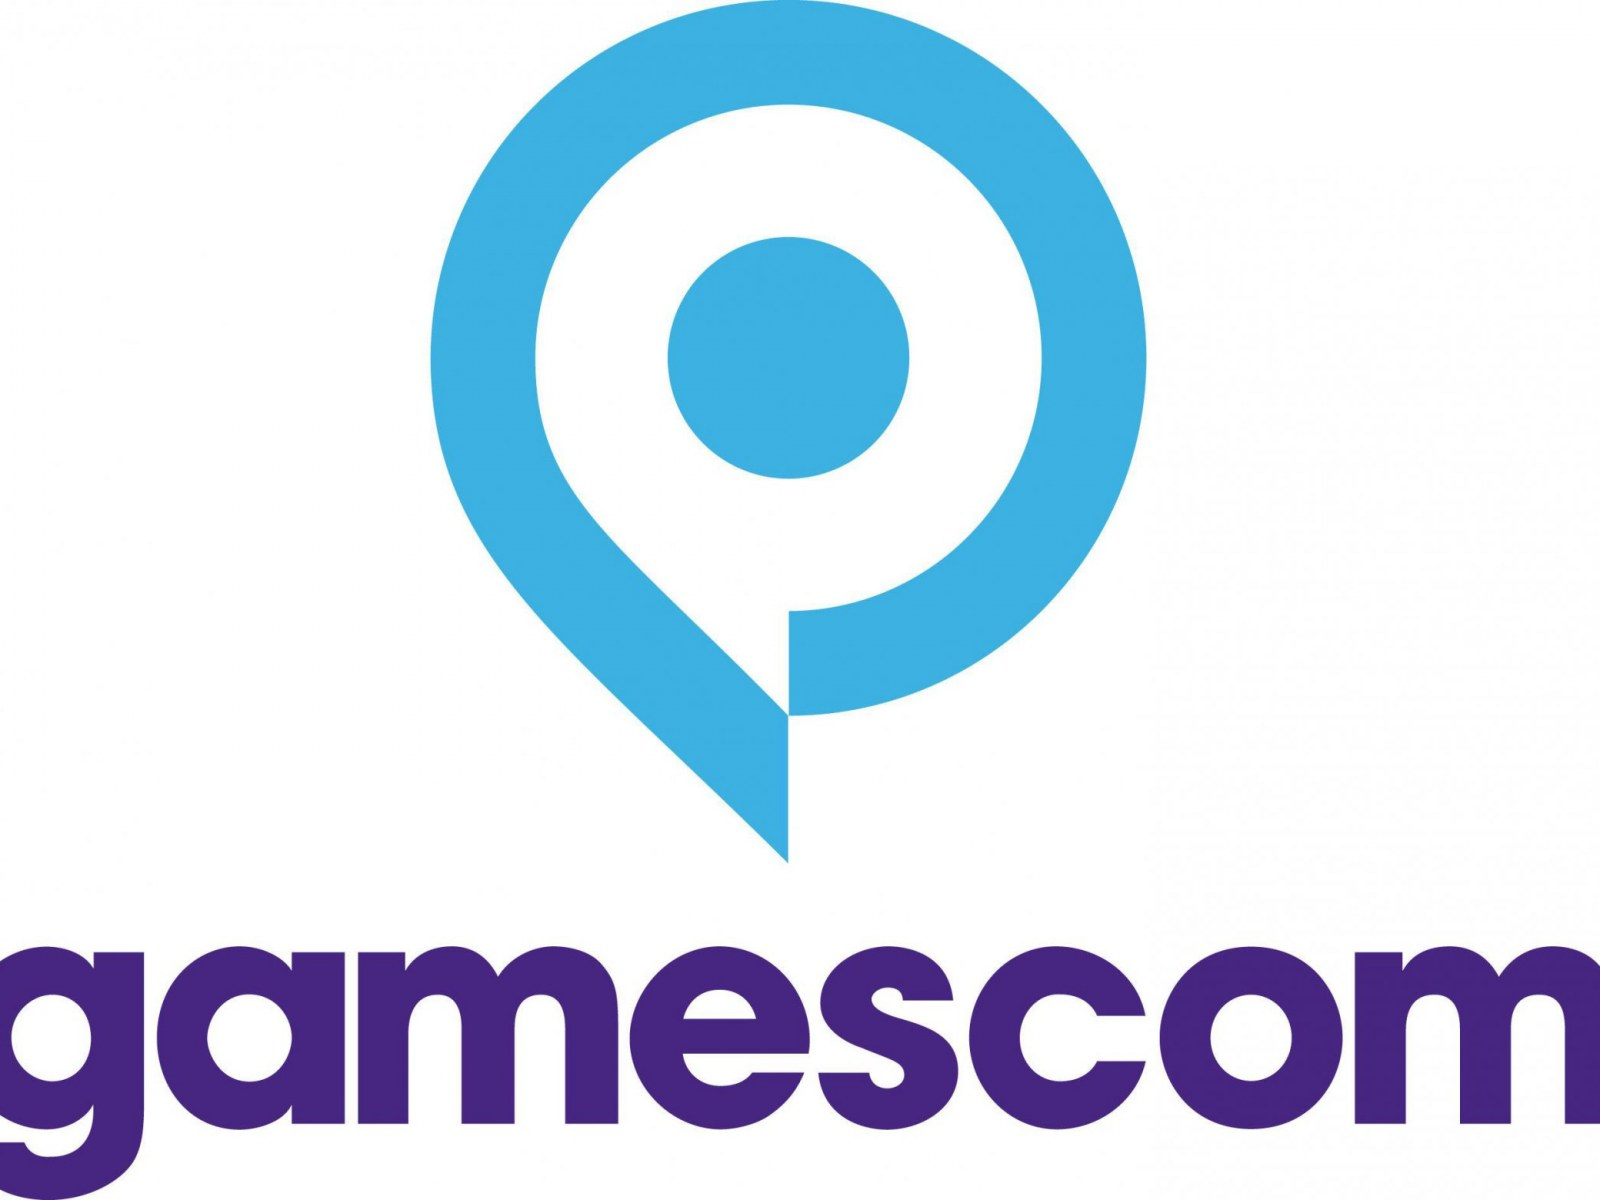 Gamescom 2018 Schedule: Live Stream and Keynote Info for